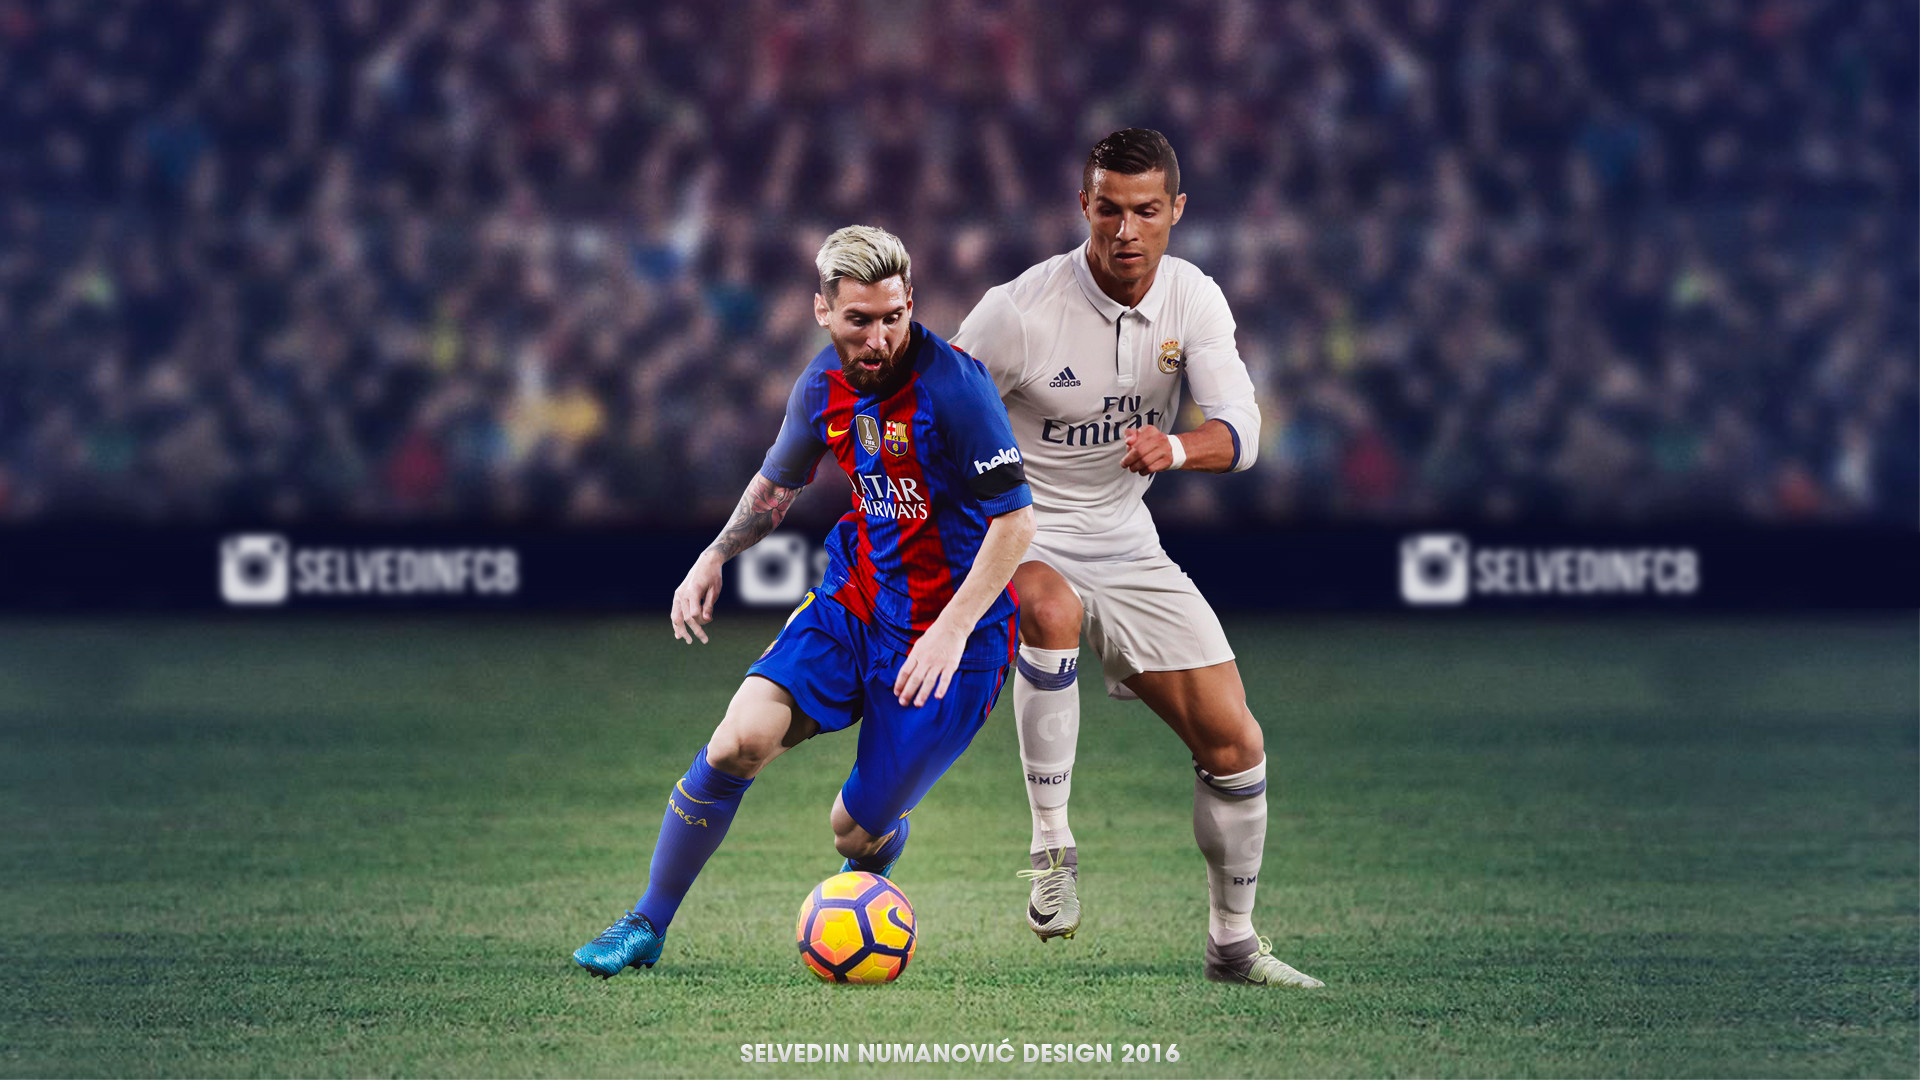 Ronaldo Vs Messi Wallpaper 2018 77 Images